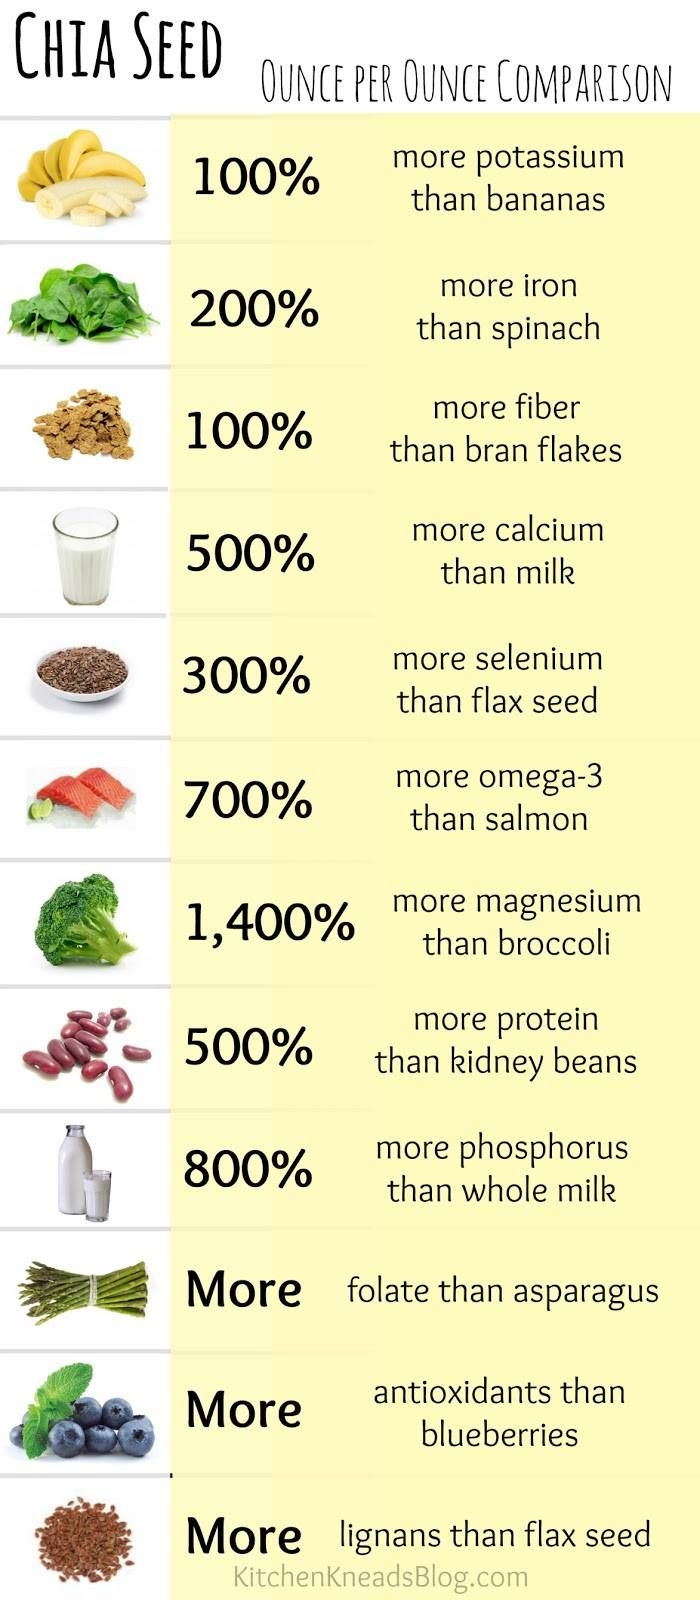 what is the benefits of chia seeds